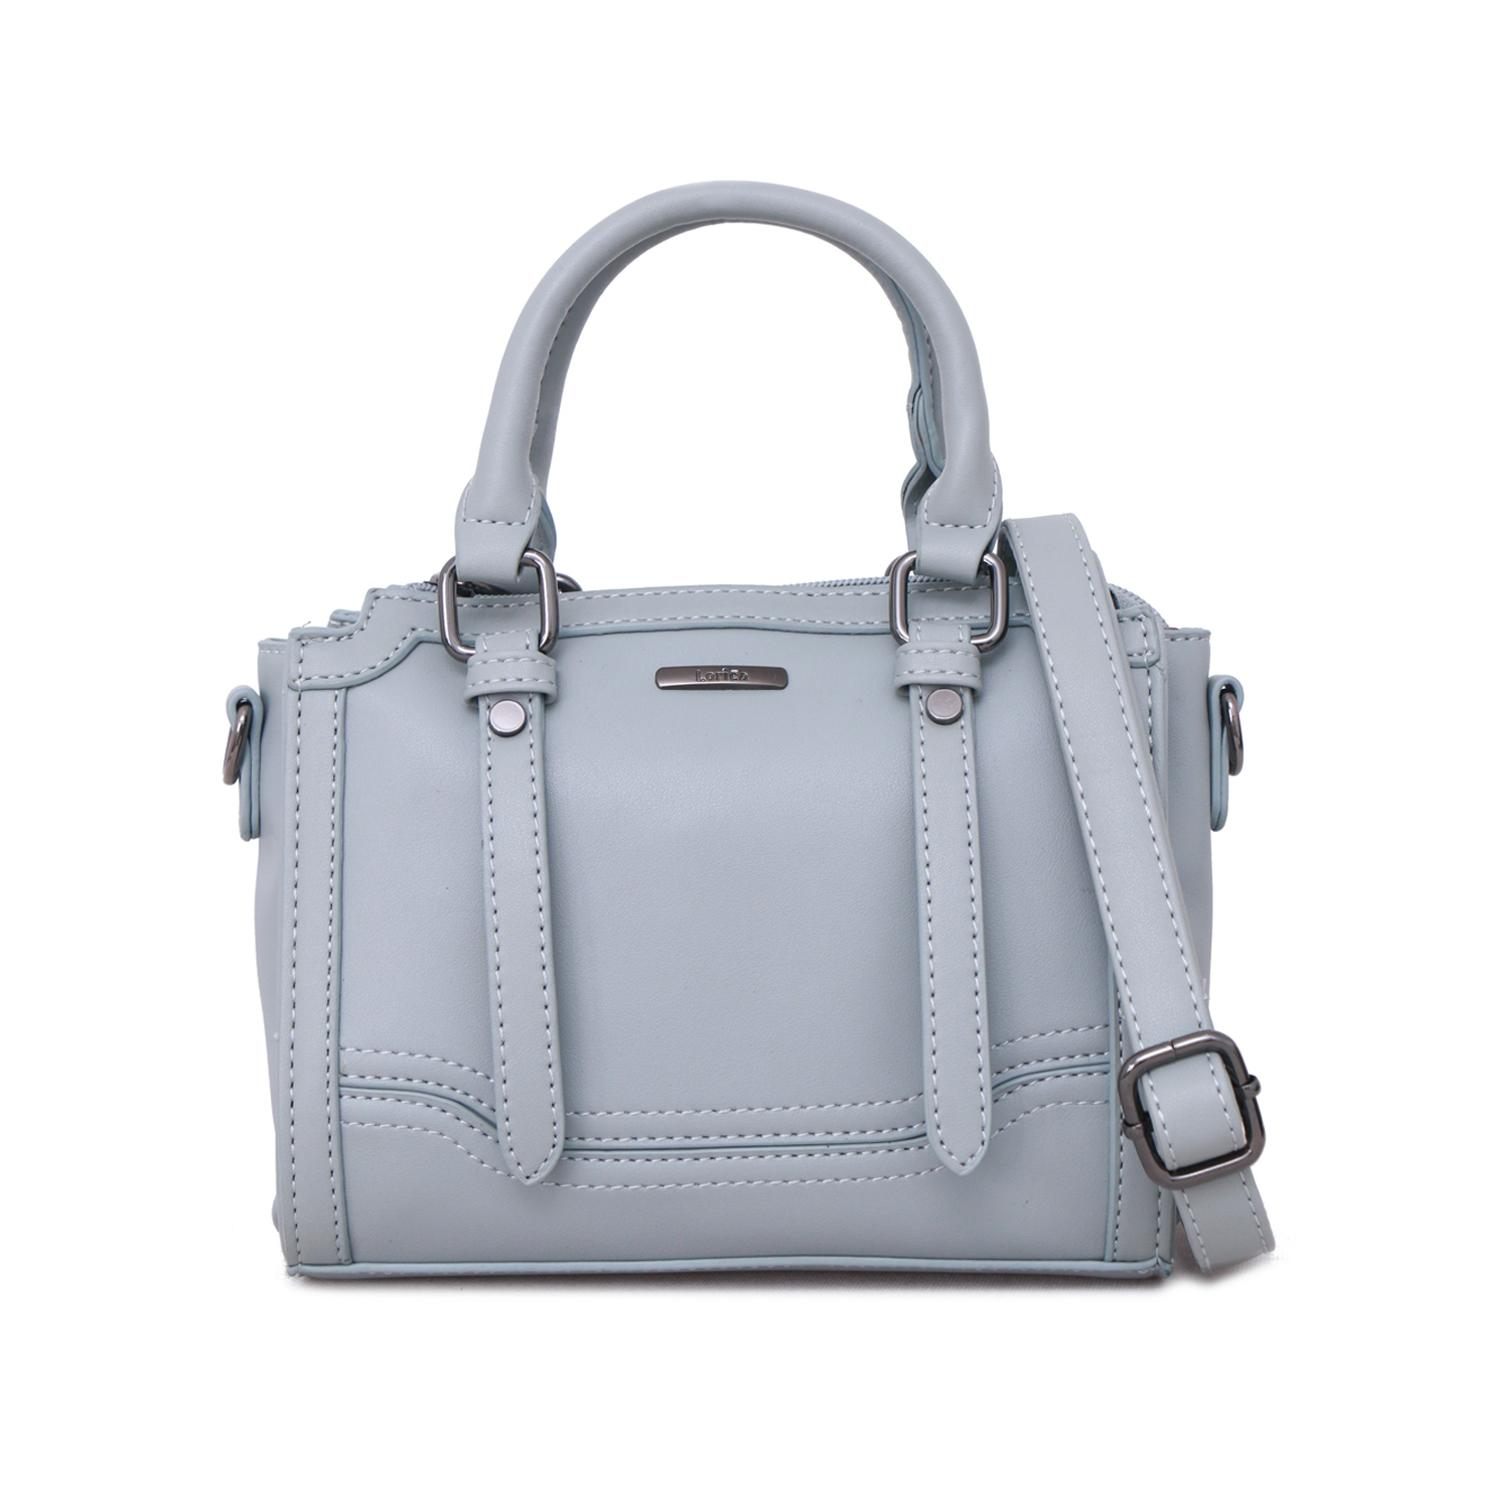 Tas Wanita Lorica by Elizabeth Brett Handbag Light Blue f945adac13